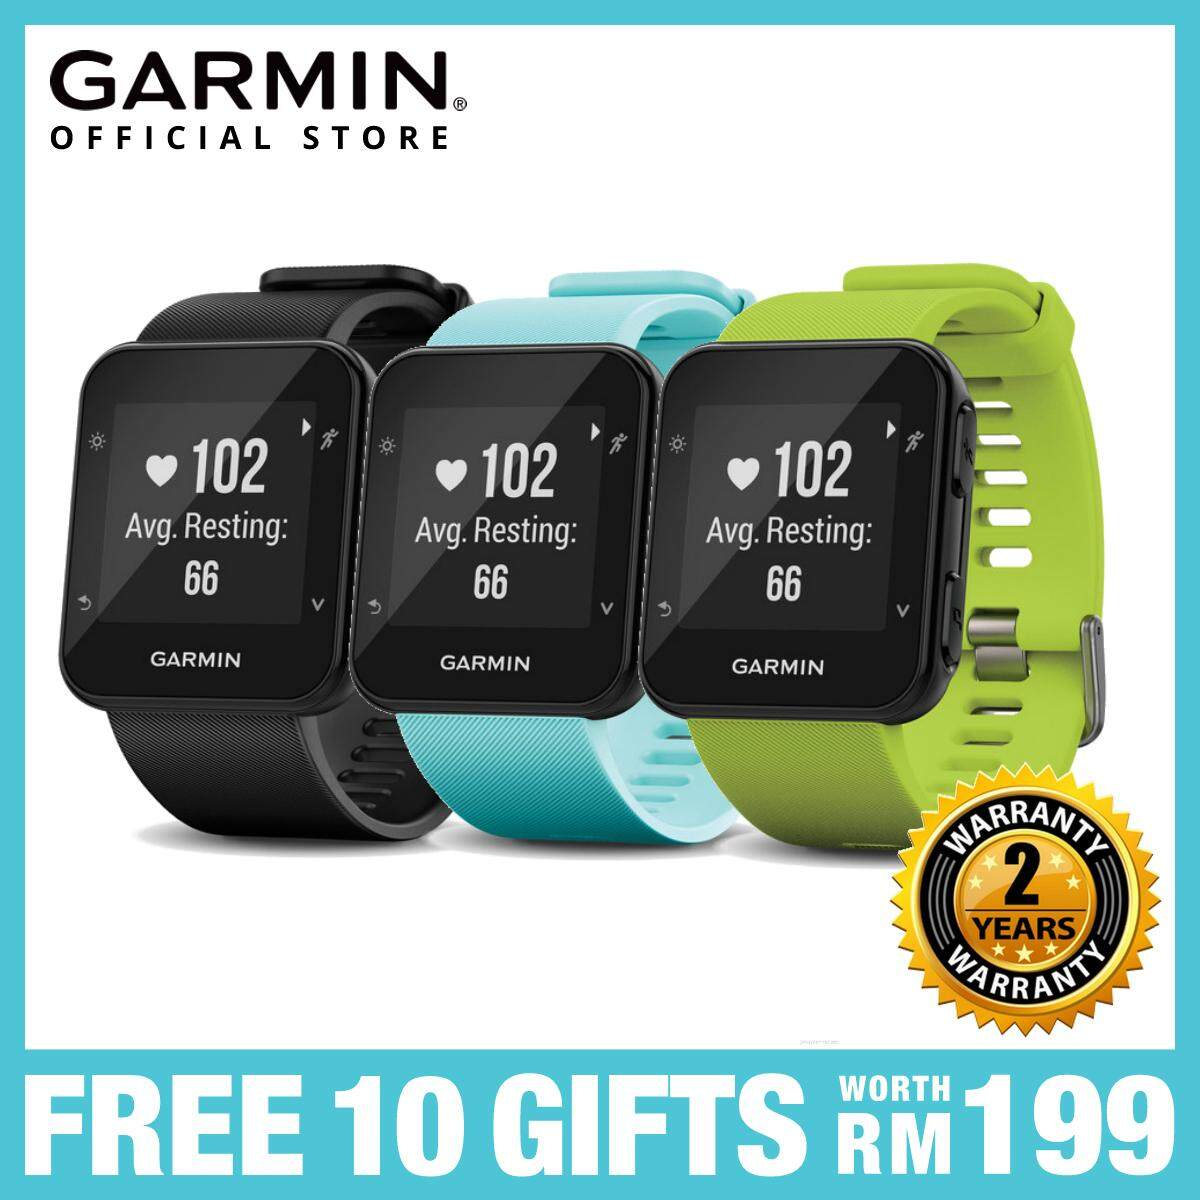 GARMIN FORERUNNER® 35 GPS RUNNING WATCH WITH WRIST-BASED HEART RATE MONITOR  - BLACK/LIMELIGHT/FROST BLUE